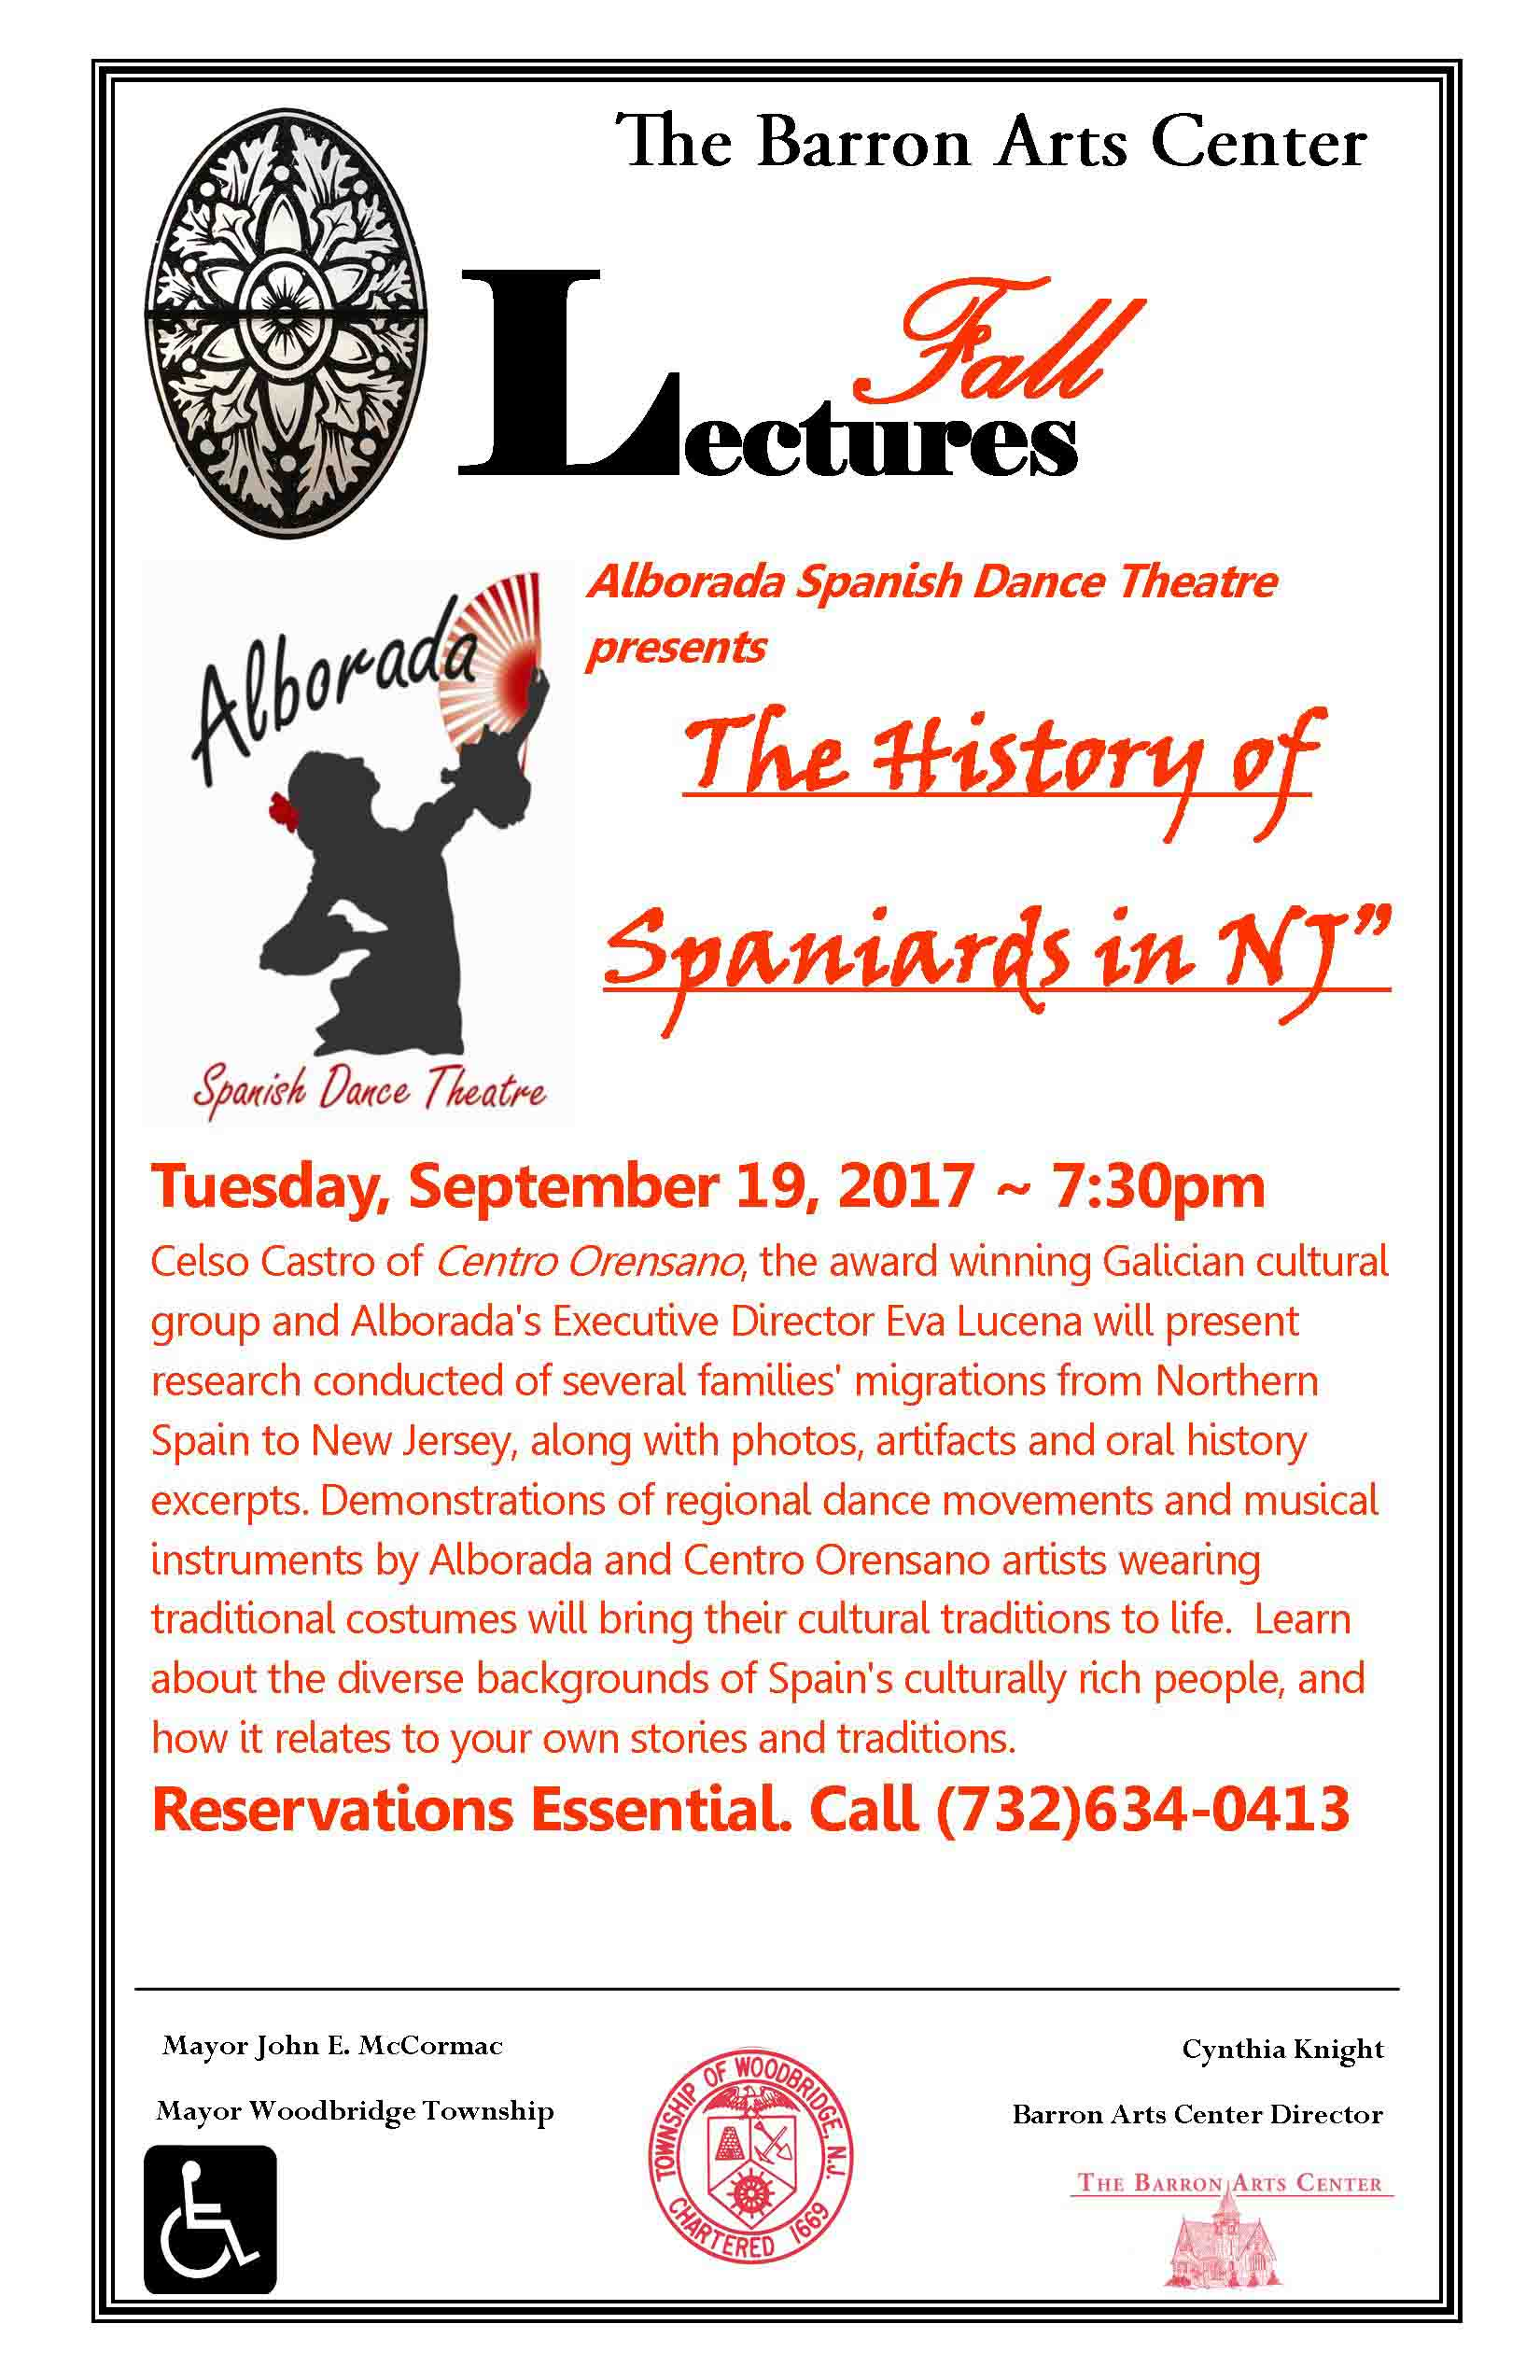 The History of Spaniards in NJ Lecture